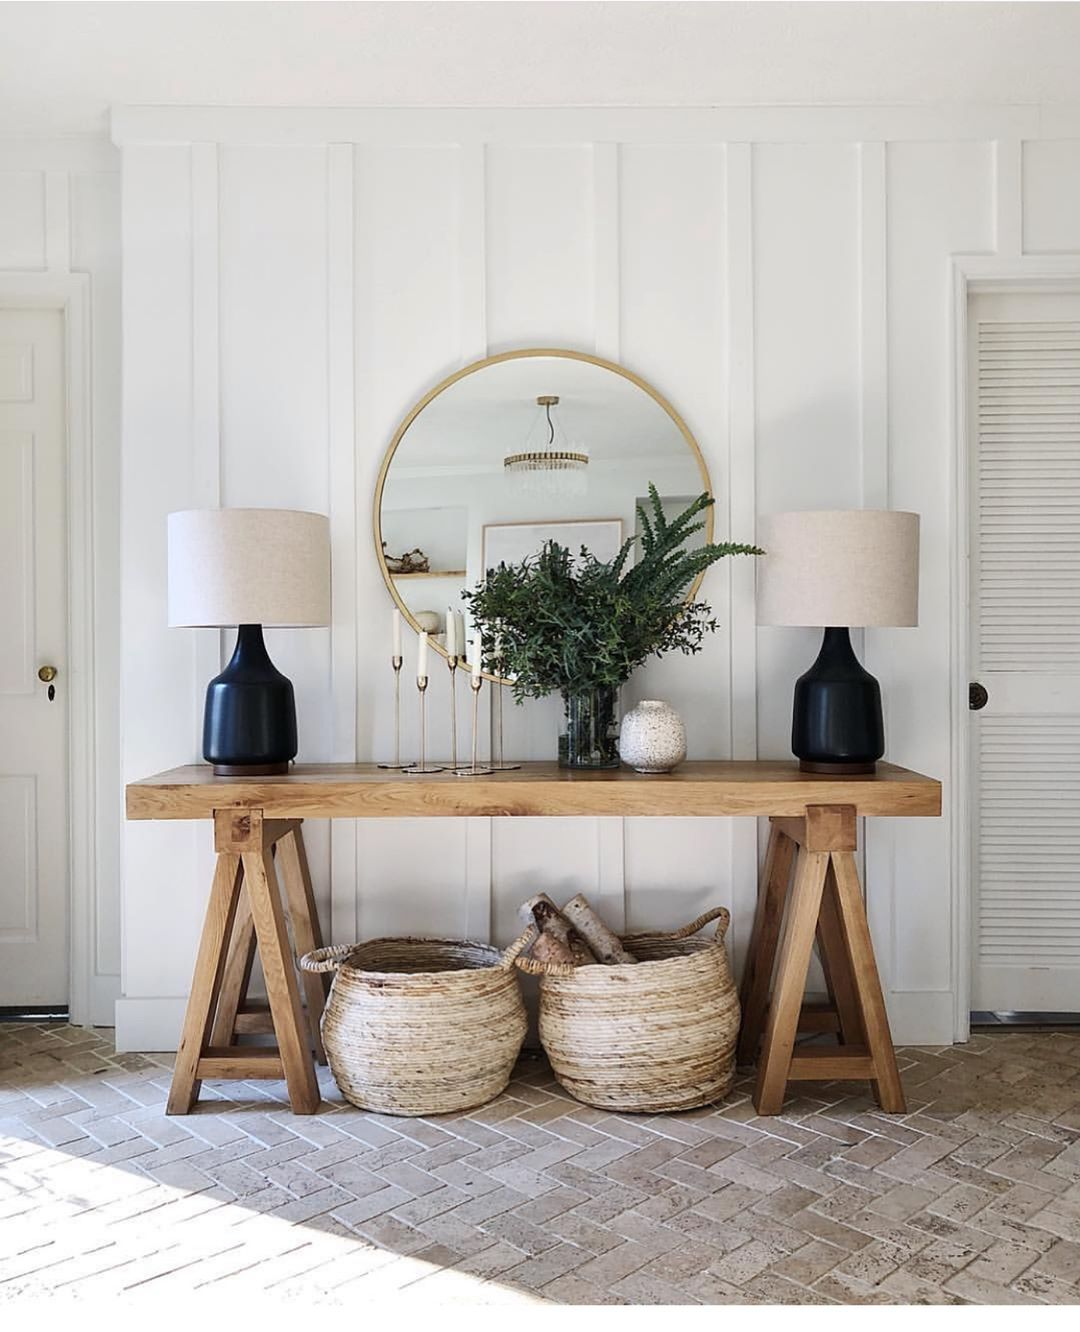 10 Home Influencers I Follow for Expensive-Looking